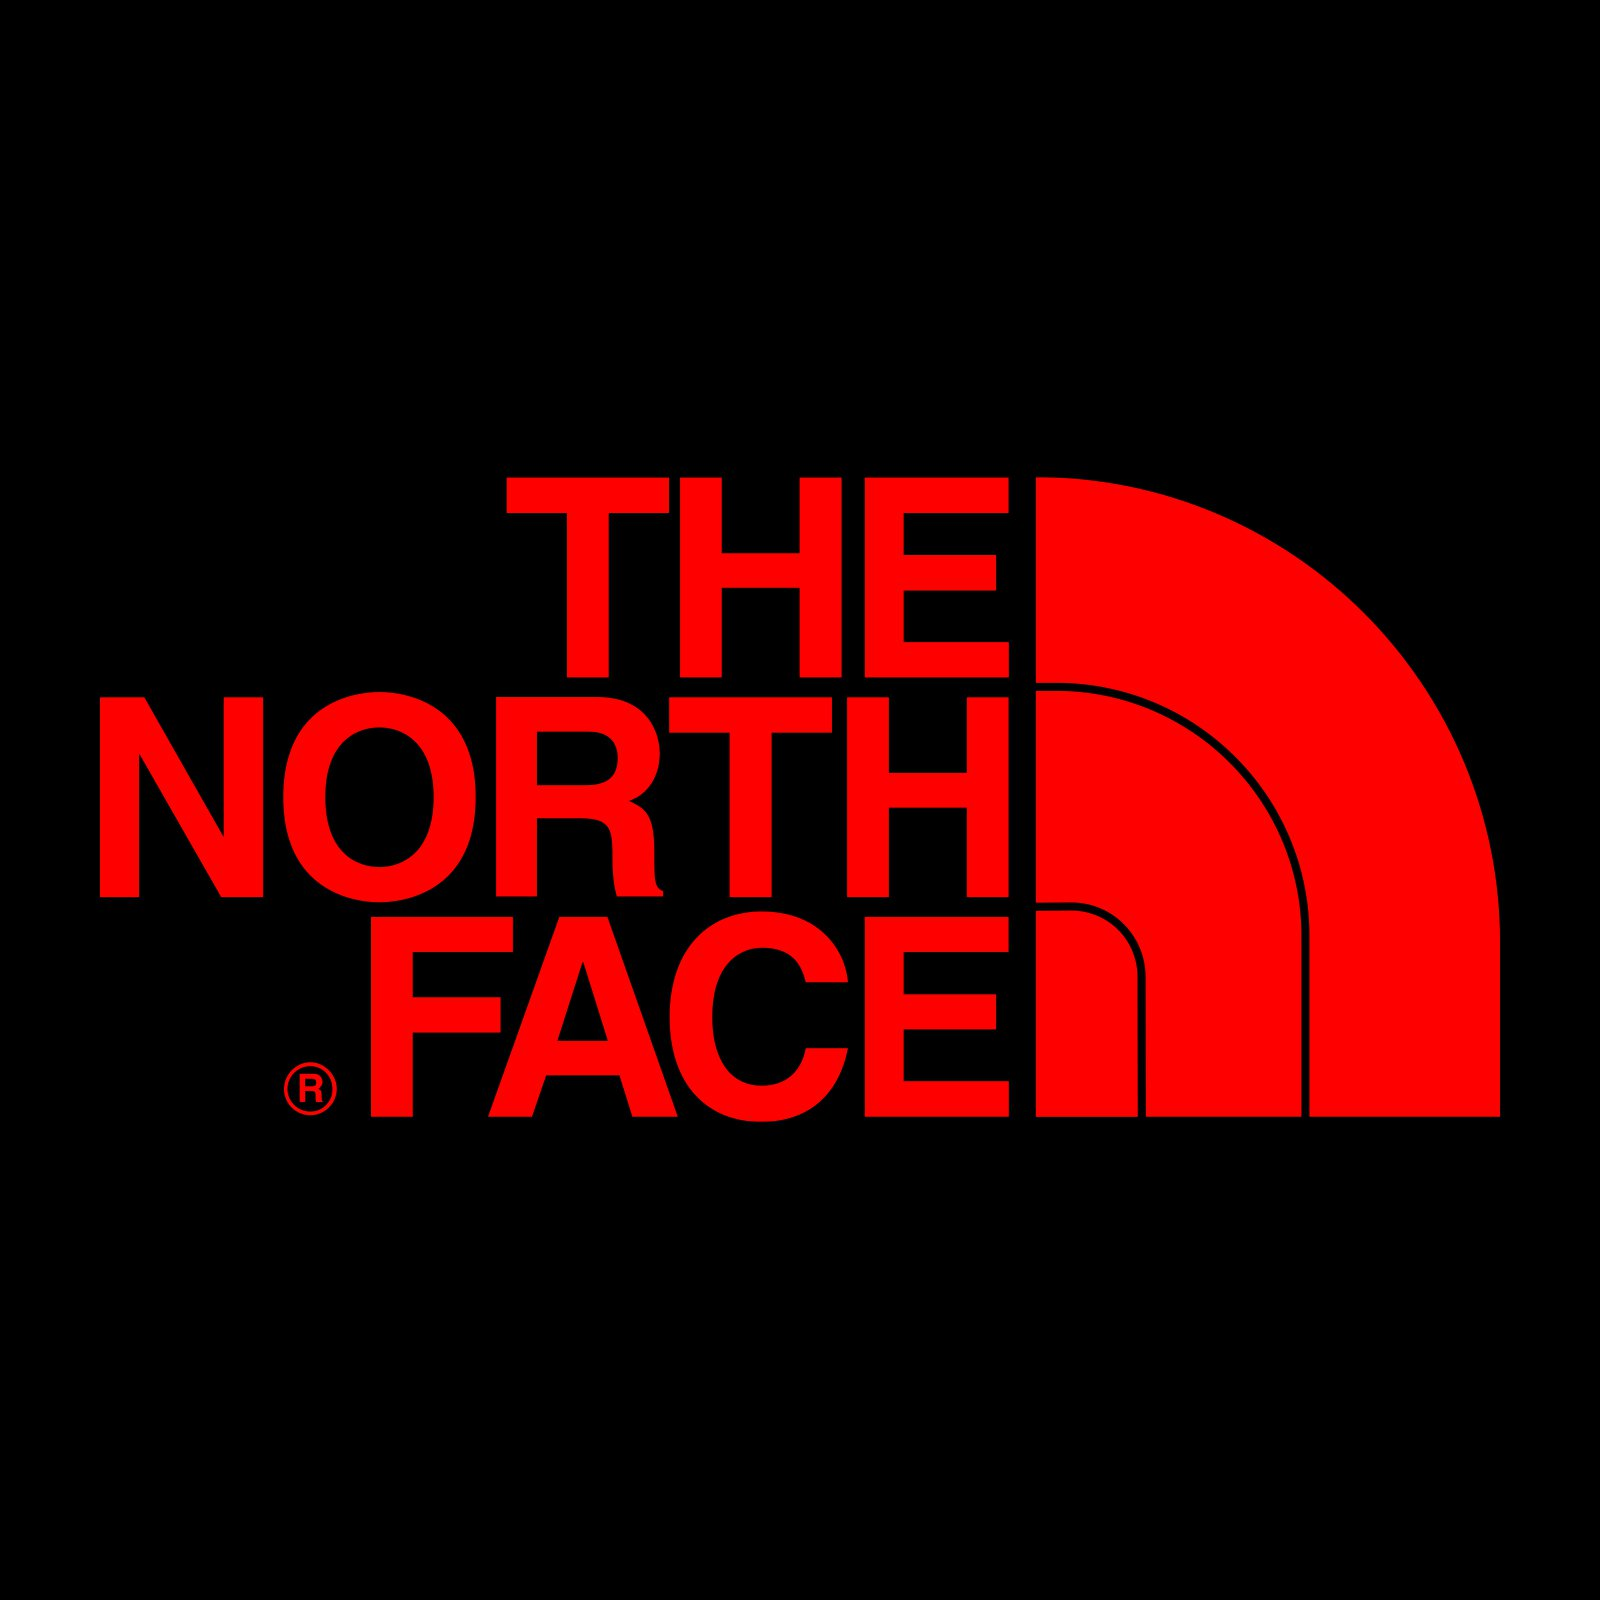 North Face Logo, North Face Symbol, Meaning, History and Evolution